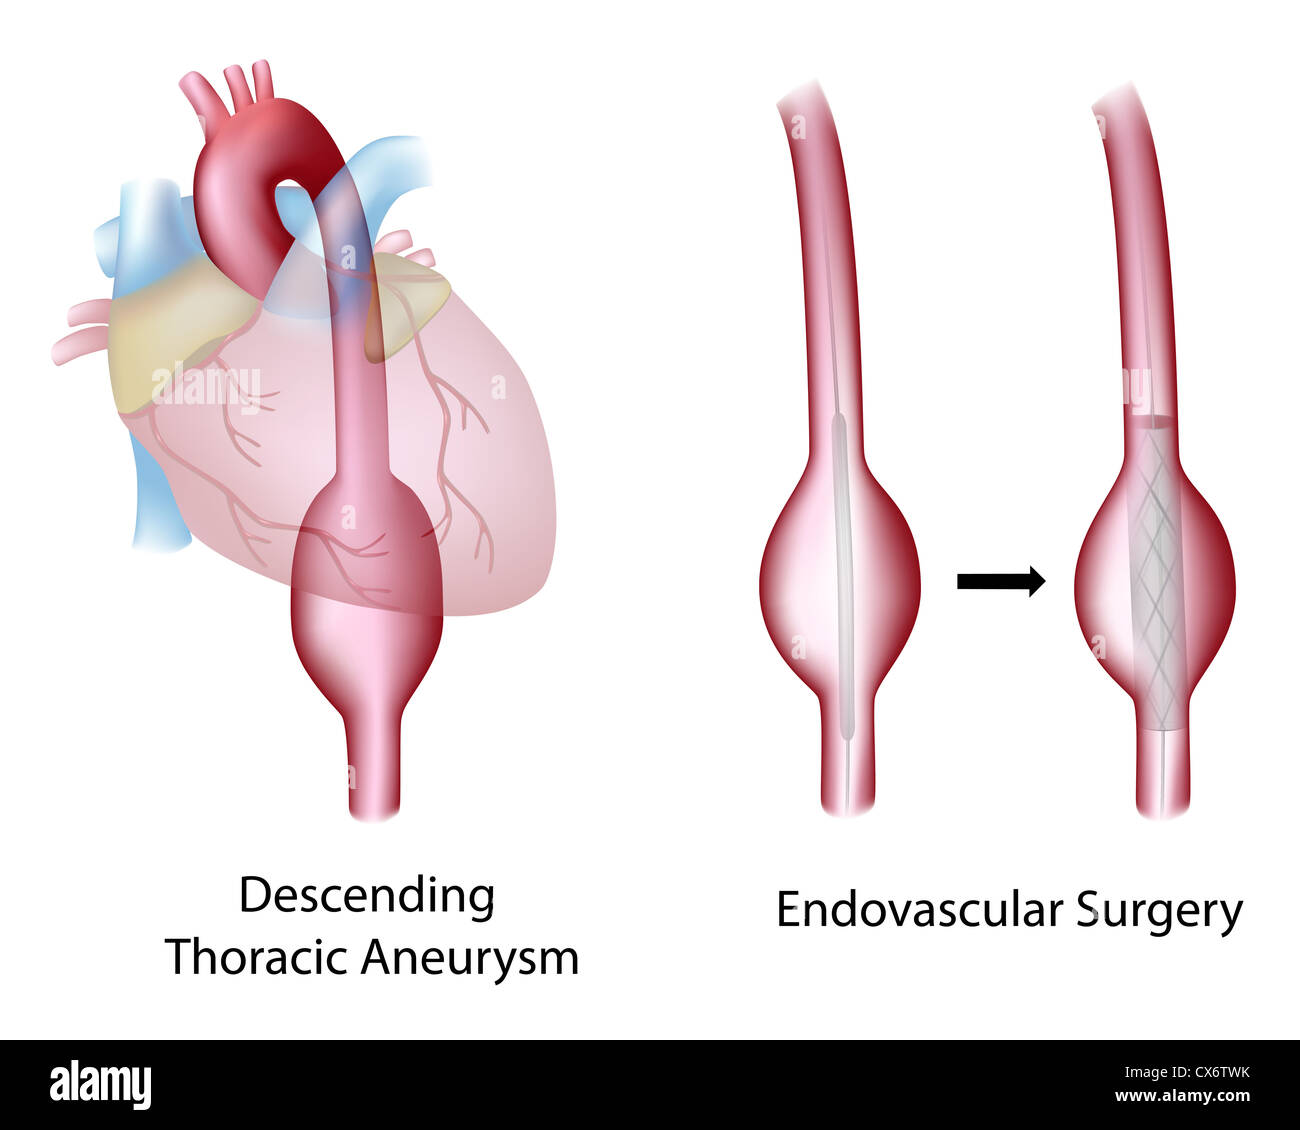 Thoracic Aortic Aneurysm Stock Photos Thoracic Aortic Aneurysm